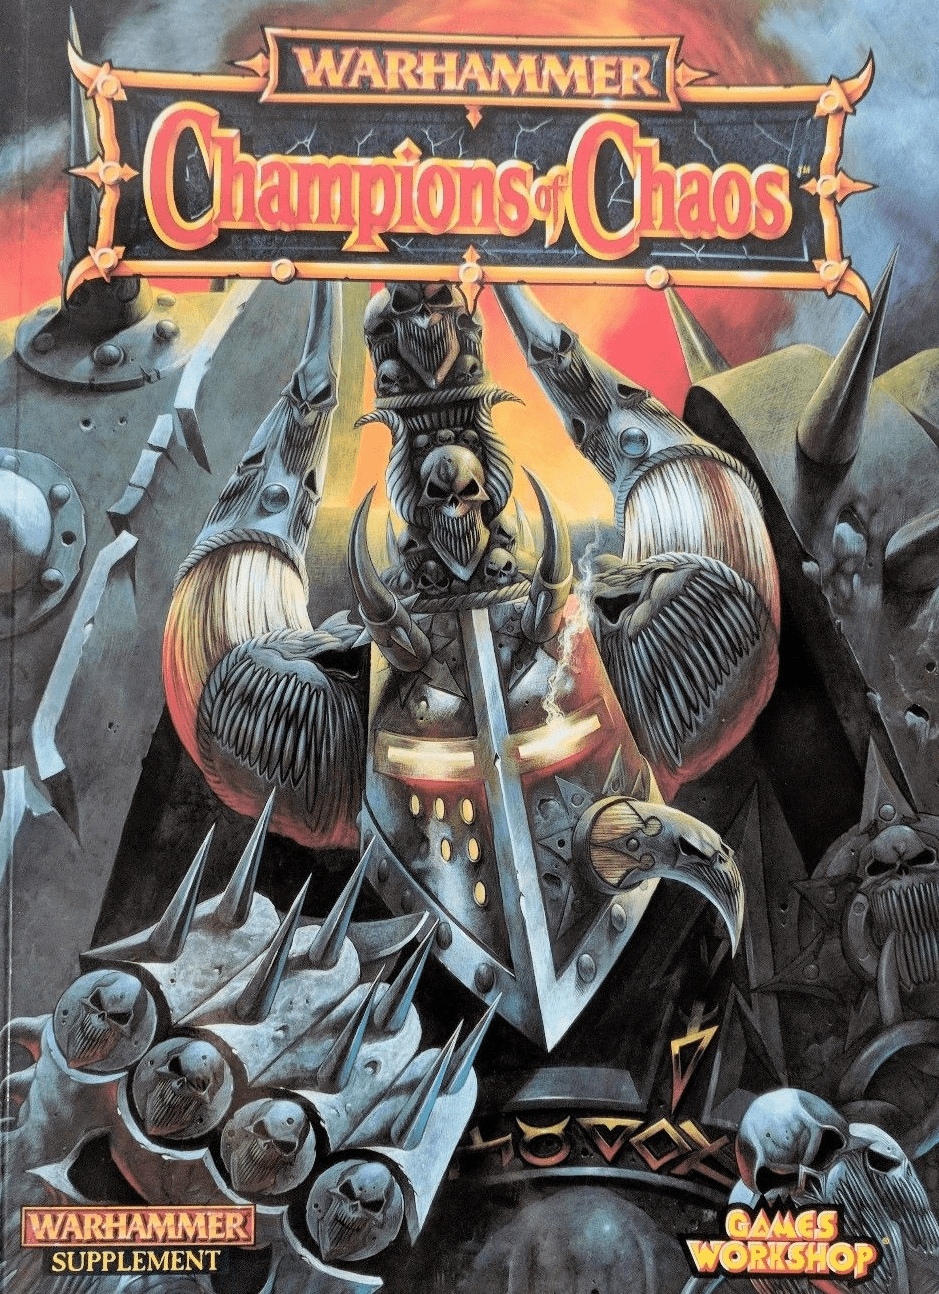 Games Workshop Warhammer Supplement Champions of Chaos Book